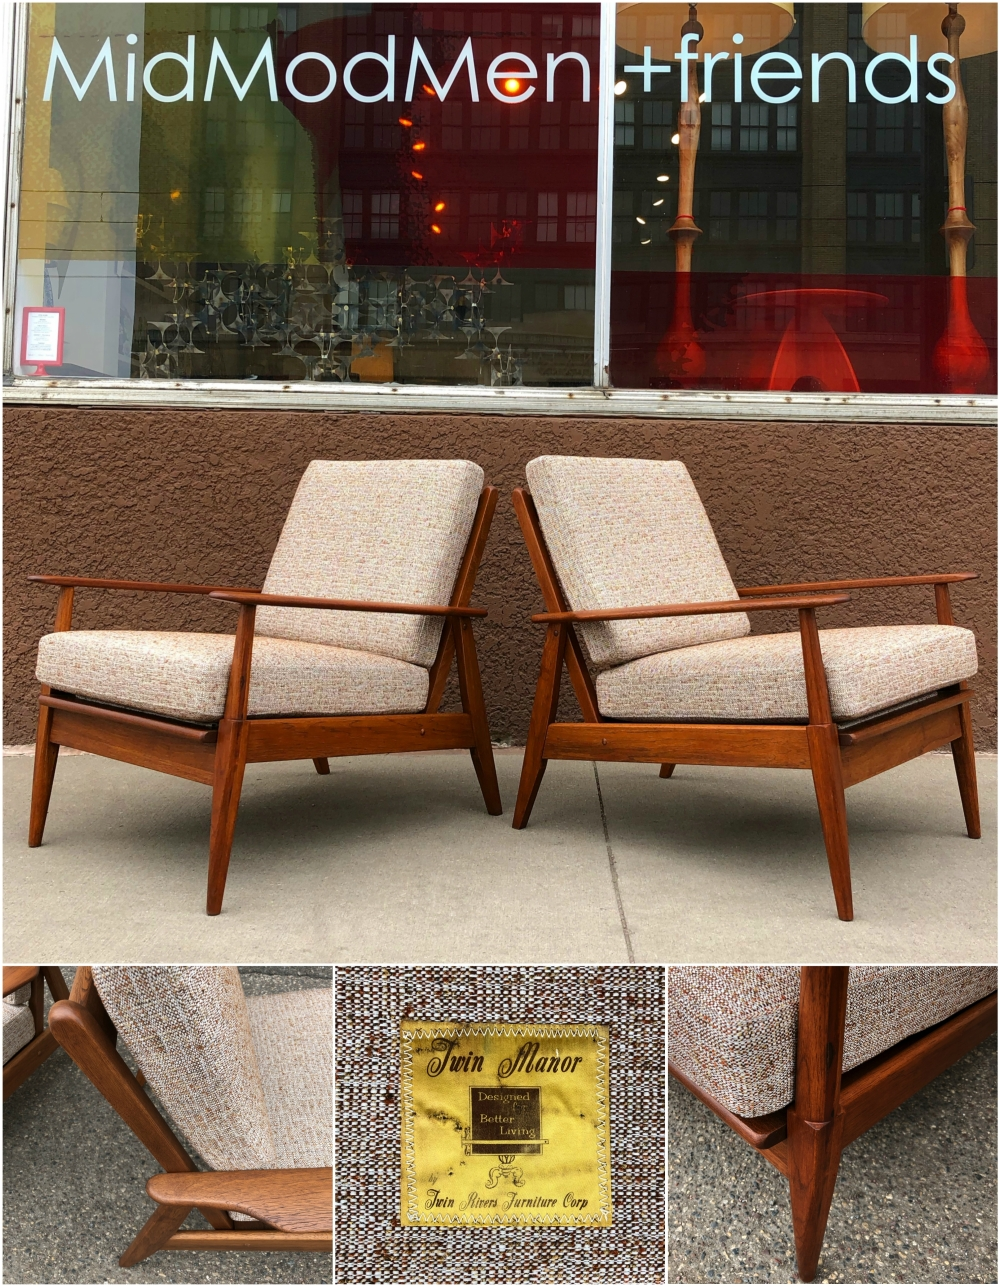 Twin Manor mid-century lounge chairs | fully restored